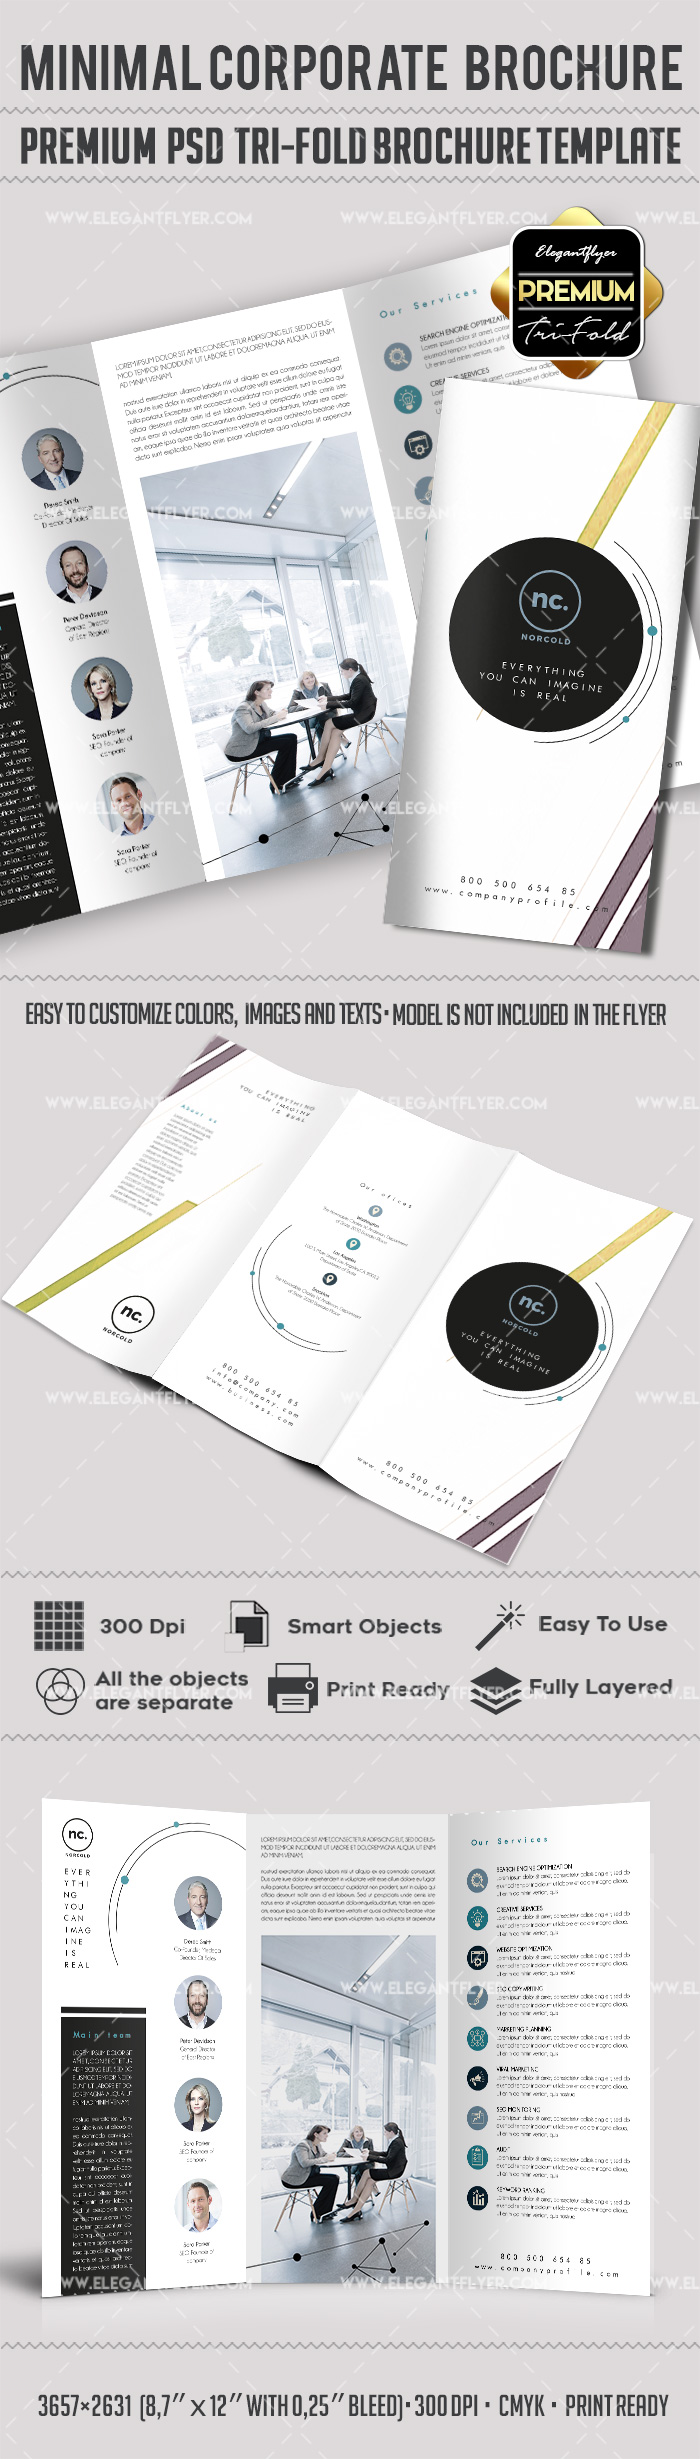 Tri-Fold Brochure for Minimal Corporate